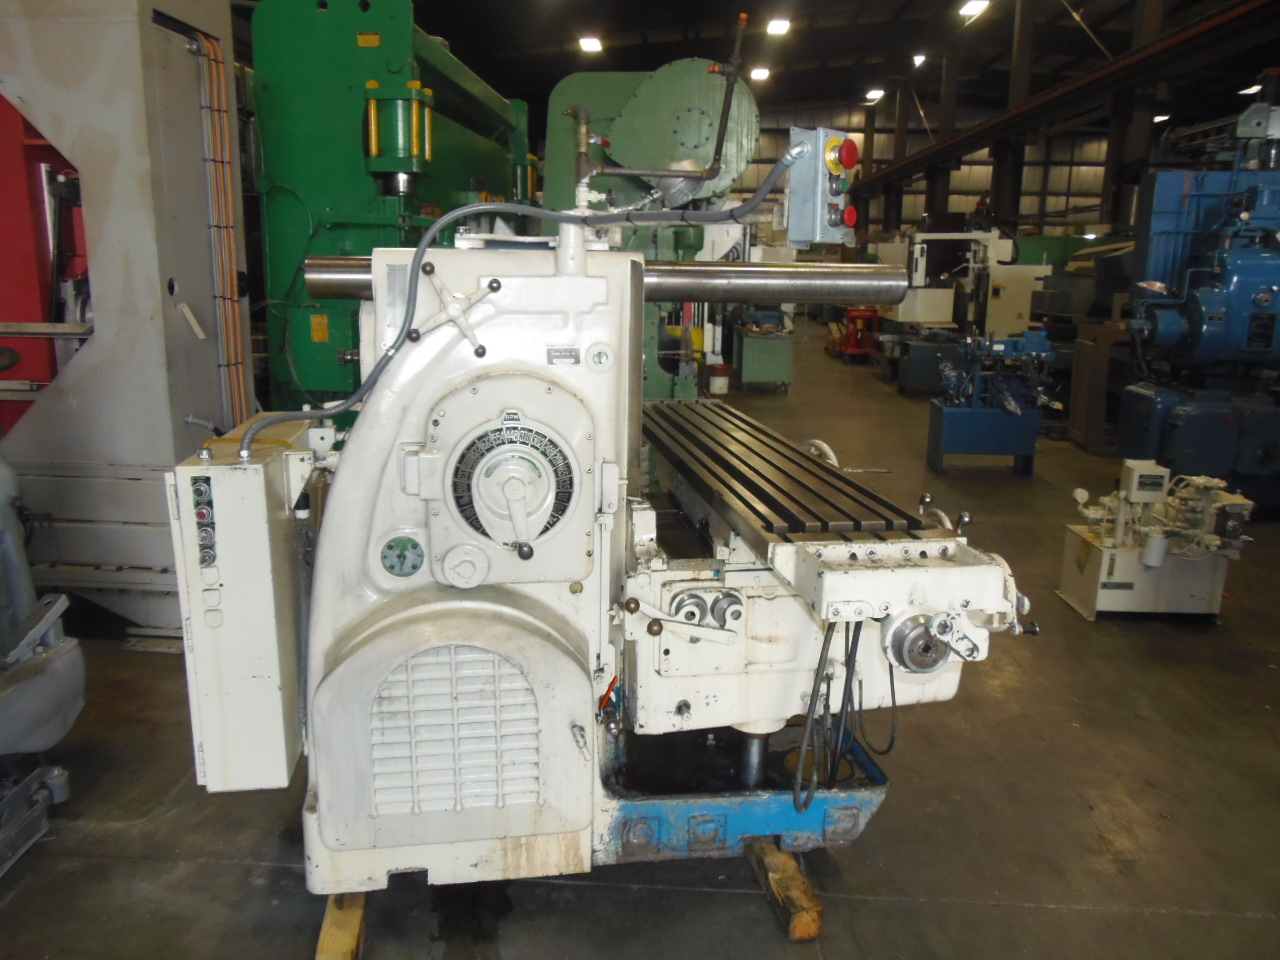 K & T HORIZONTAL MILL, MODEL 420-TF16, 16 X 80 TABLE, 20 HP, 1970